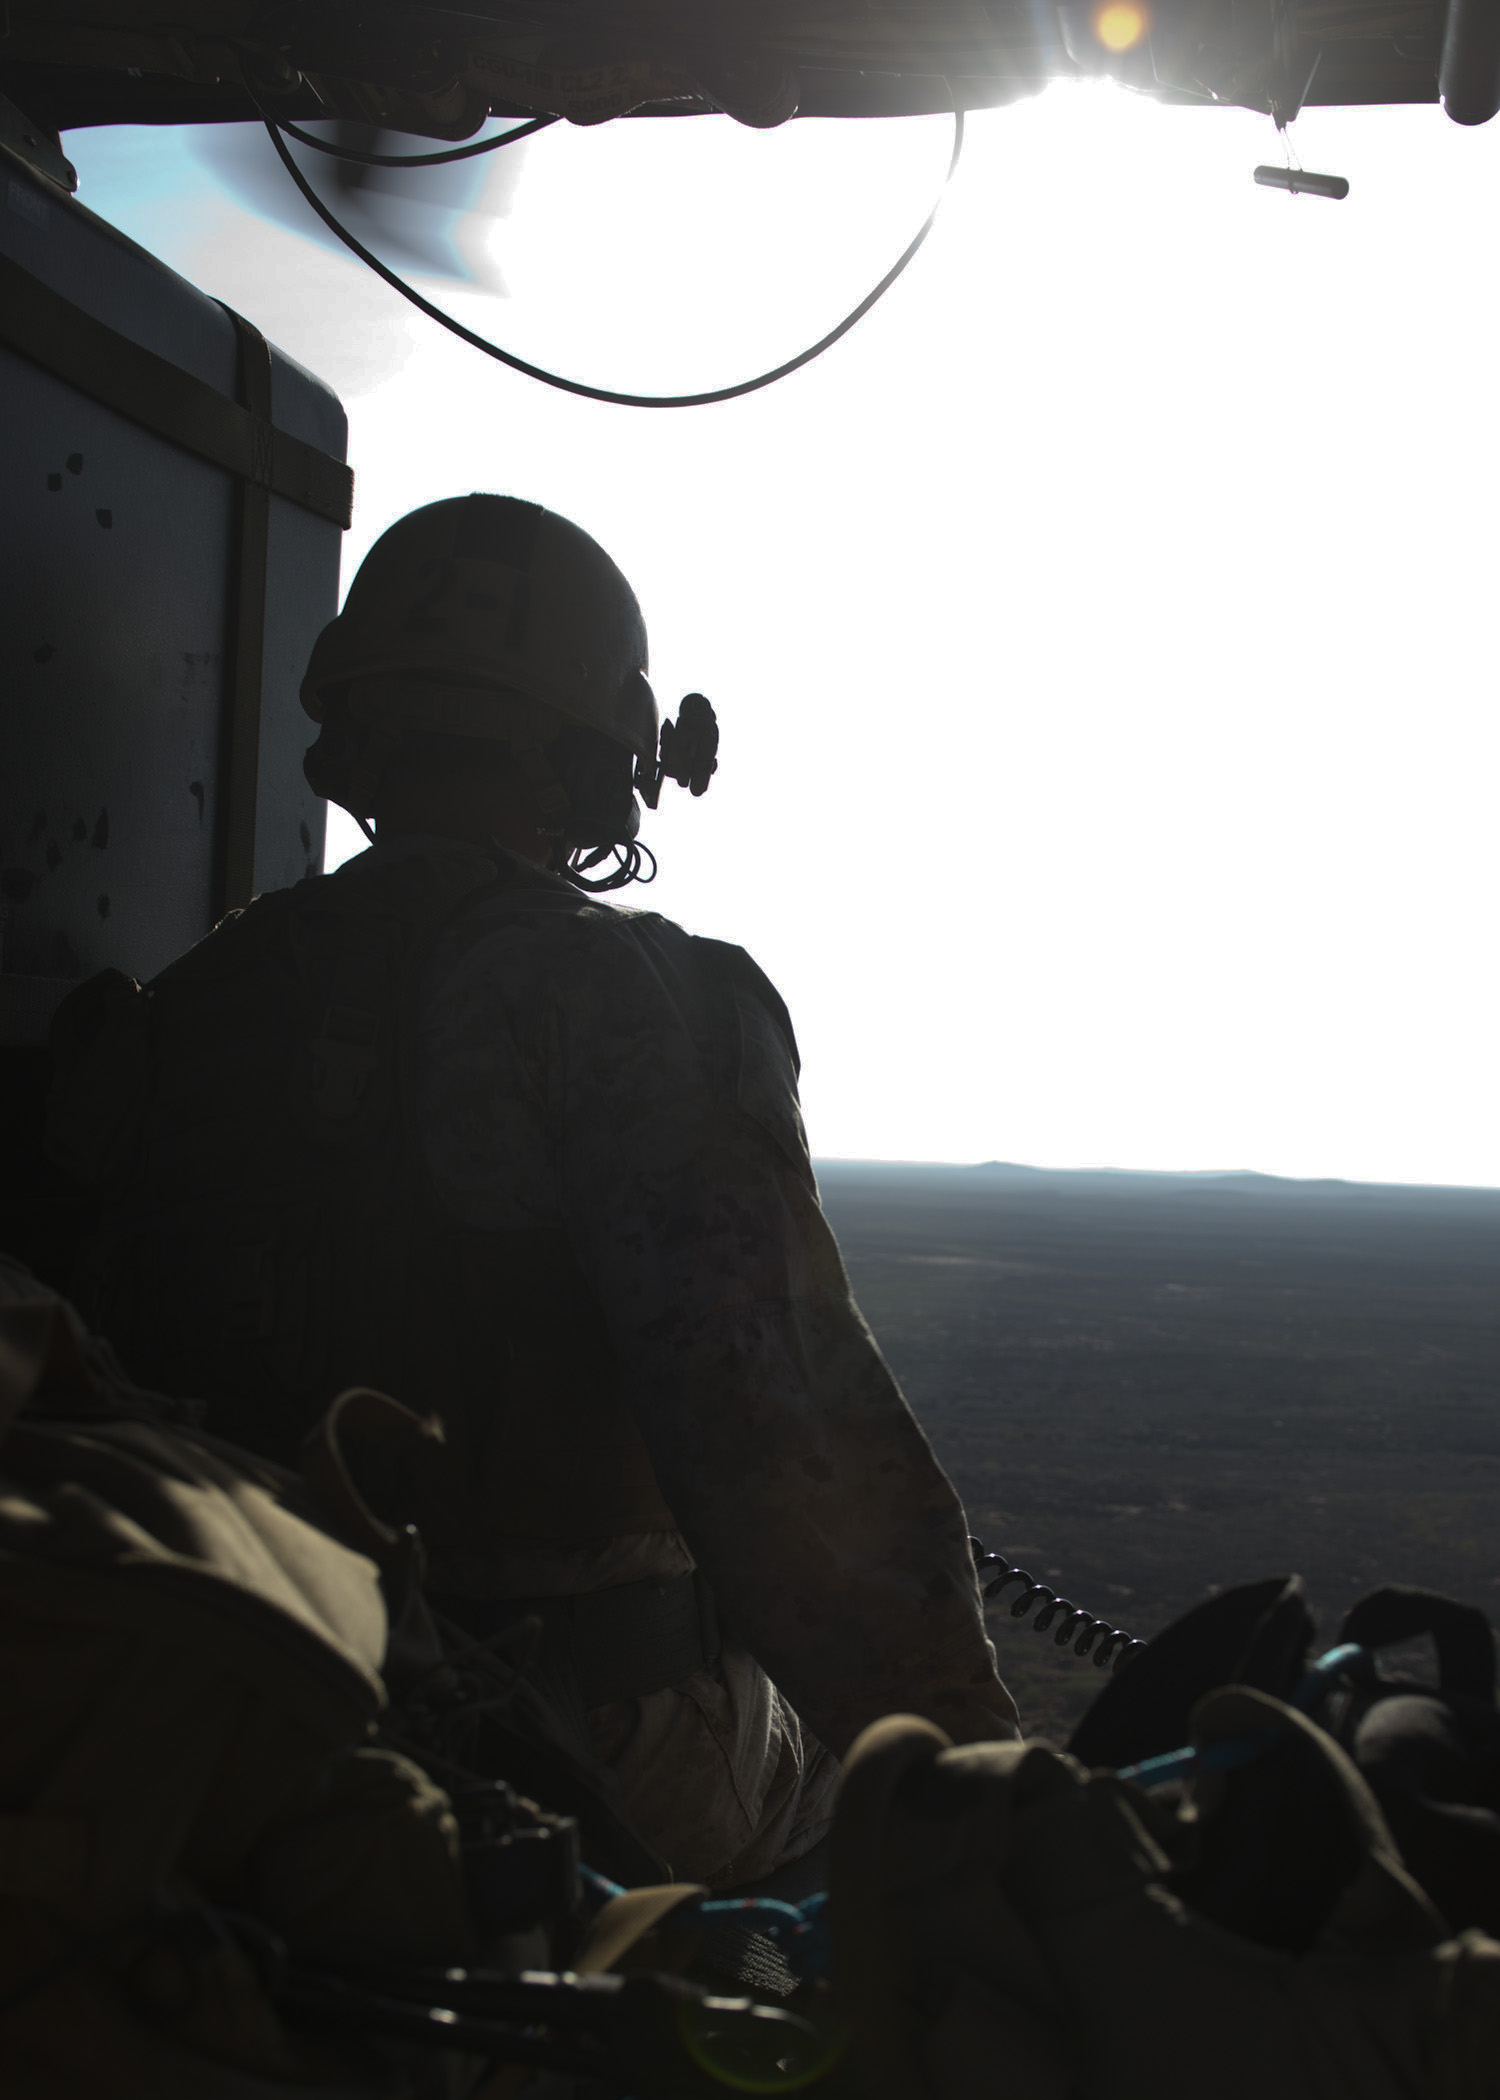 A joint terminal attack controller from the 24th Marine Expeditionary Unit's Maritime Raid Force observes the area below from an Air Force HH-60 Pave Hawk during a flight over Arta, Djibouti, Feb. 4, 2015. The 24th MEU is embarked on the ships of the Iwo Jima Amphibious Ready Group and deployed to maintain regional security in the U.S. 5th Fleet area of operations. (U.S. Air Force photo by Staff Sgt. Kevin Iinuma)